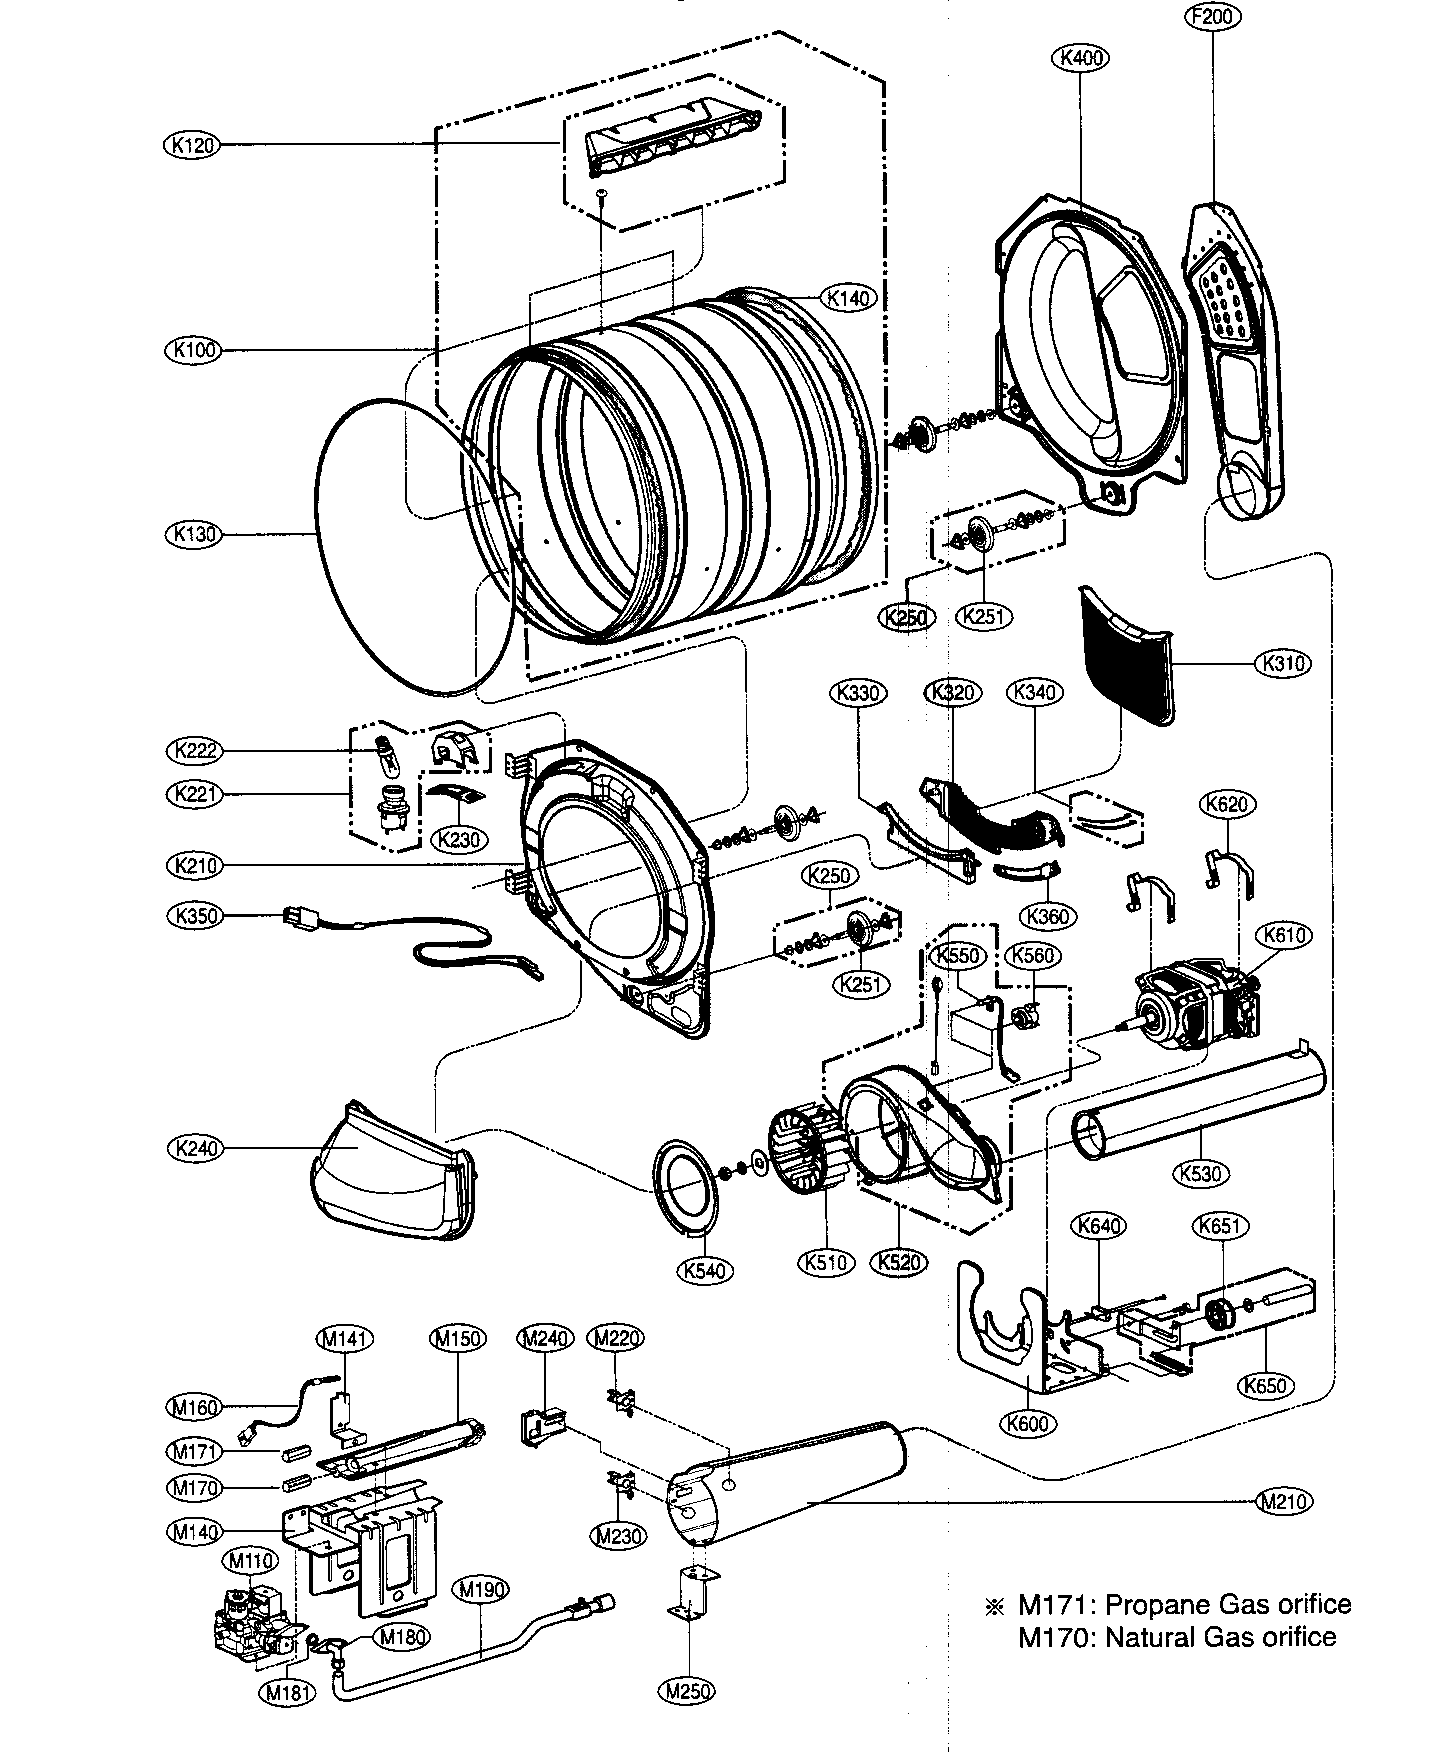 DRUM/MOTOR ASSY Diagram & Parts List for Model dlg8388wm